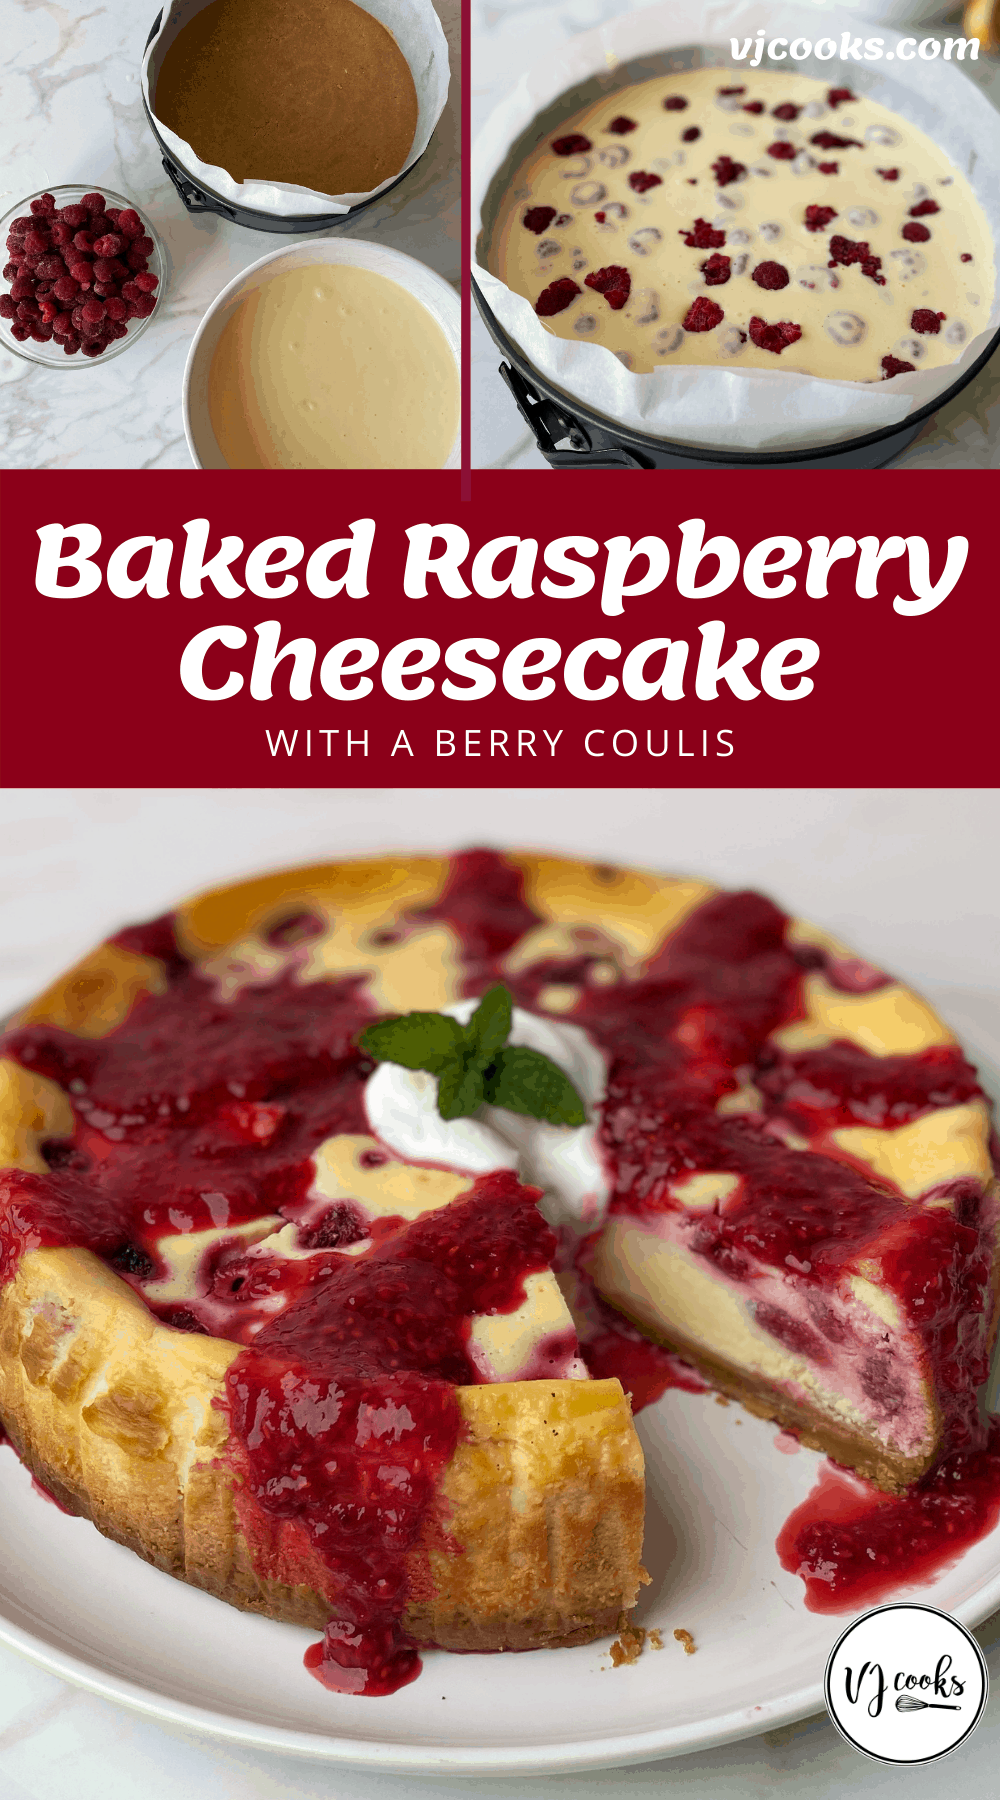 The process of making and baking a raspberry cheesecake.